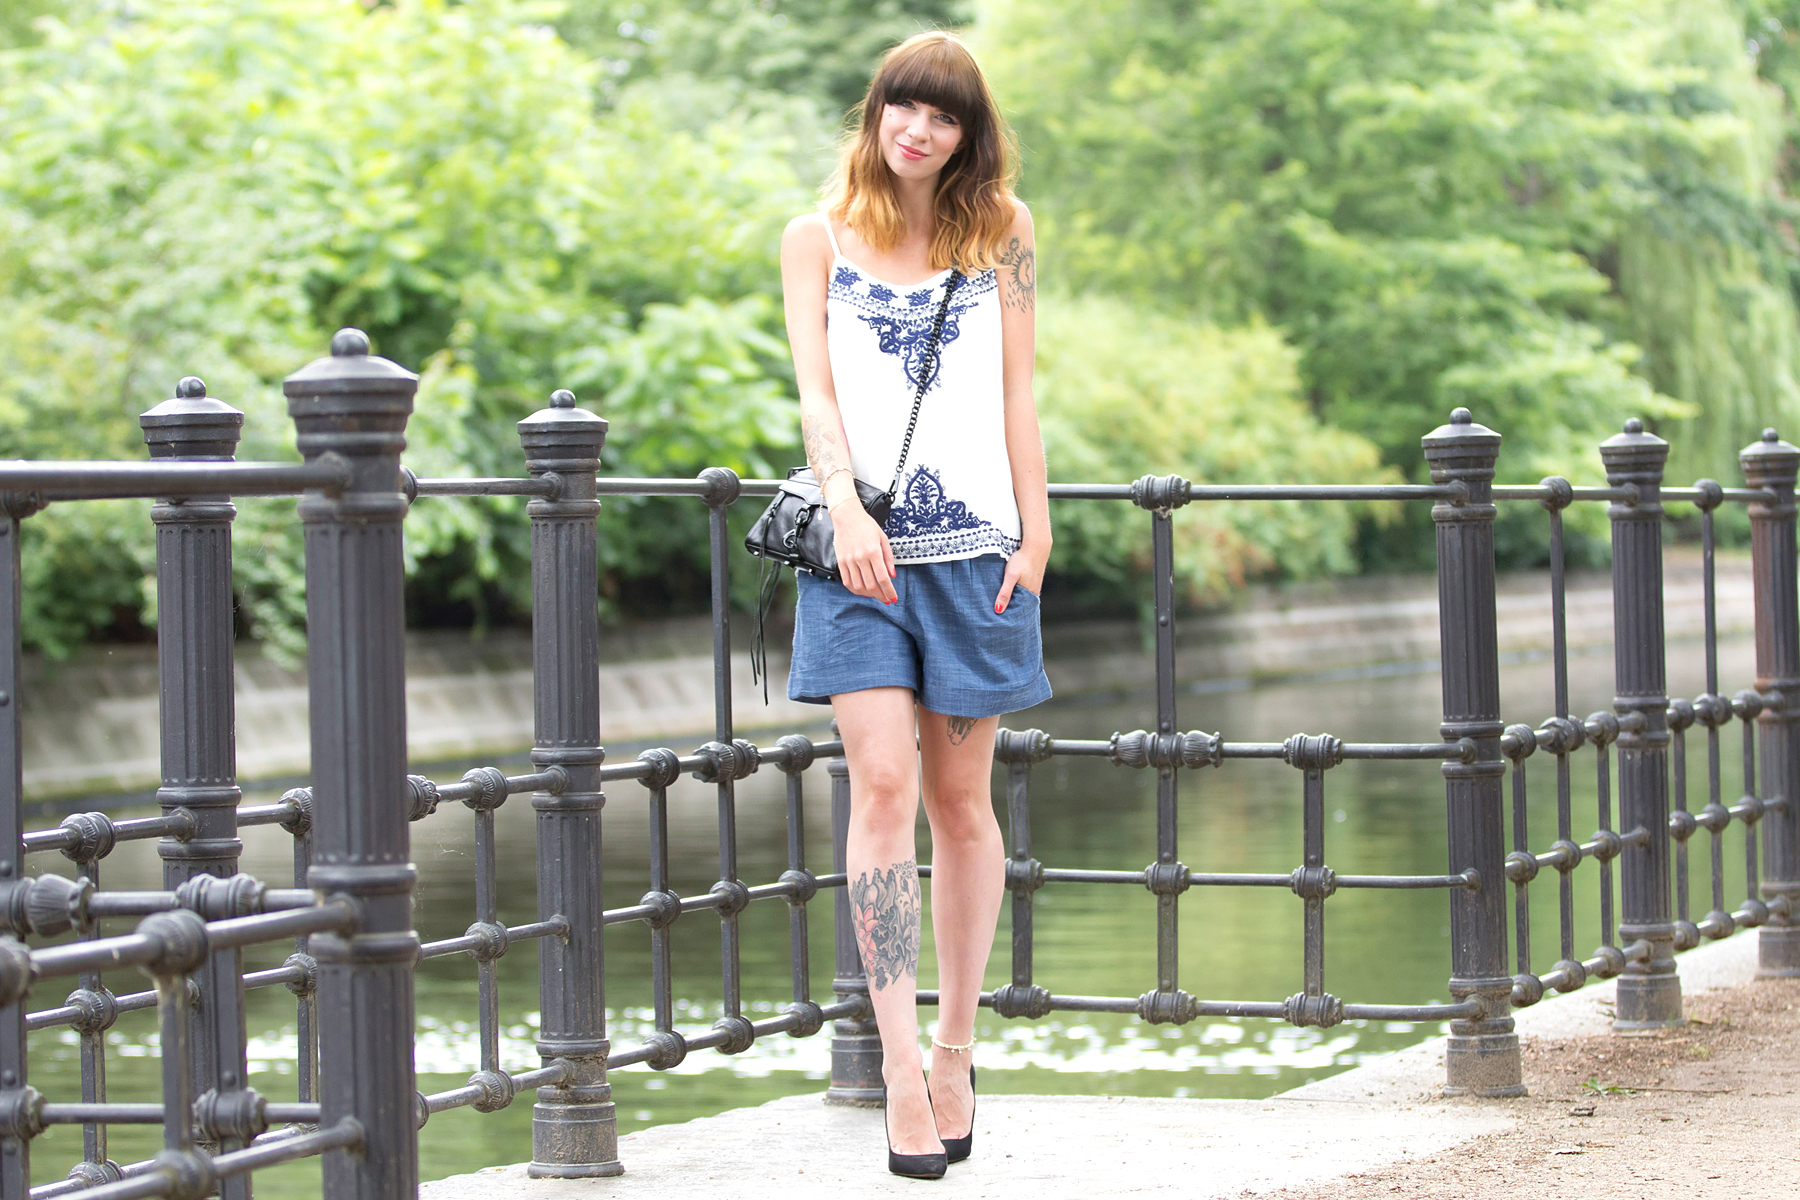 monsoon accessorize outfit accessoires schmuck sommer look outfit ootd rebecca minkoff topshop modeblogger fashion blogger ricarda schernus cats & dogs düsseldorf berlin 7